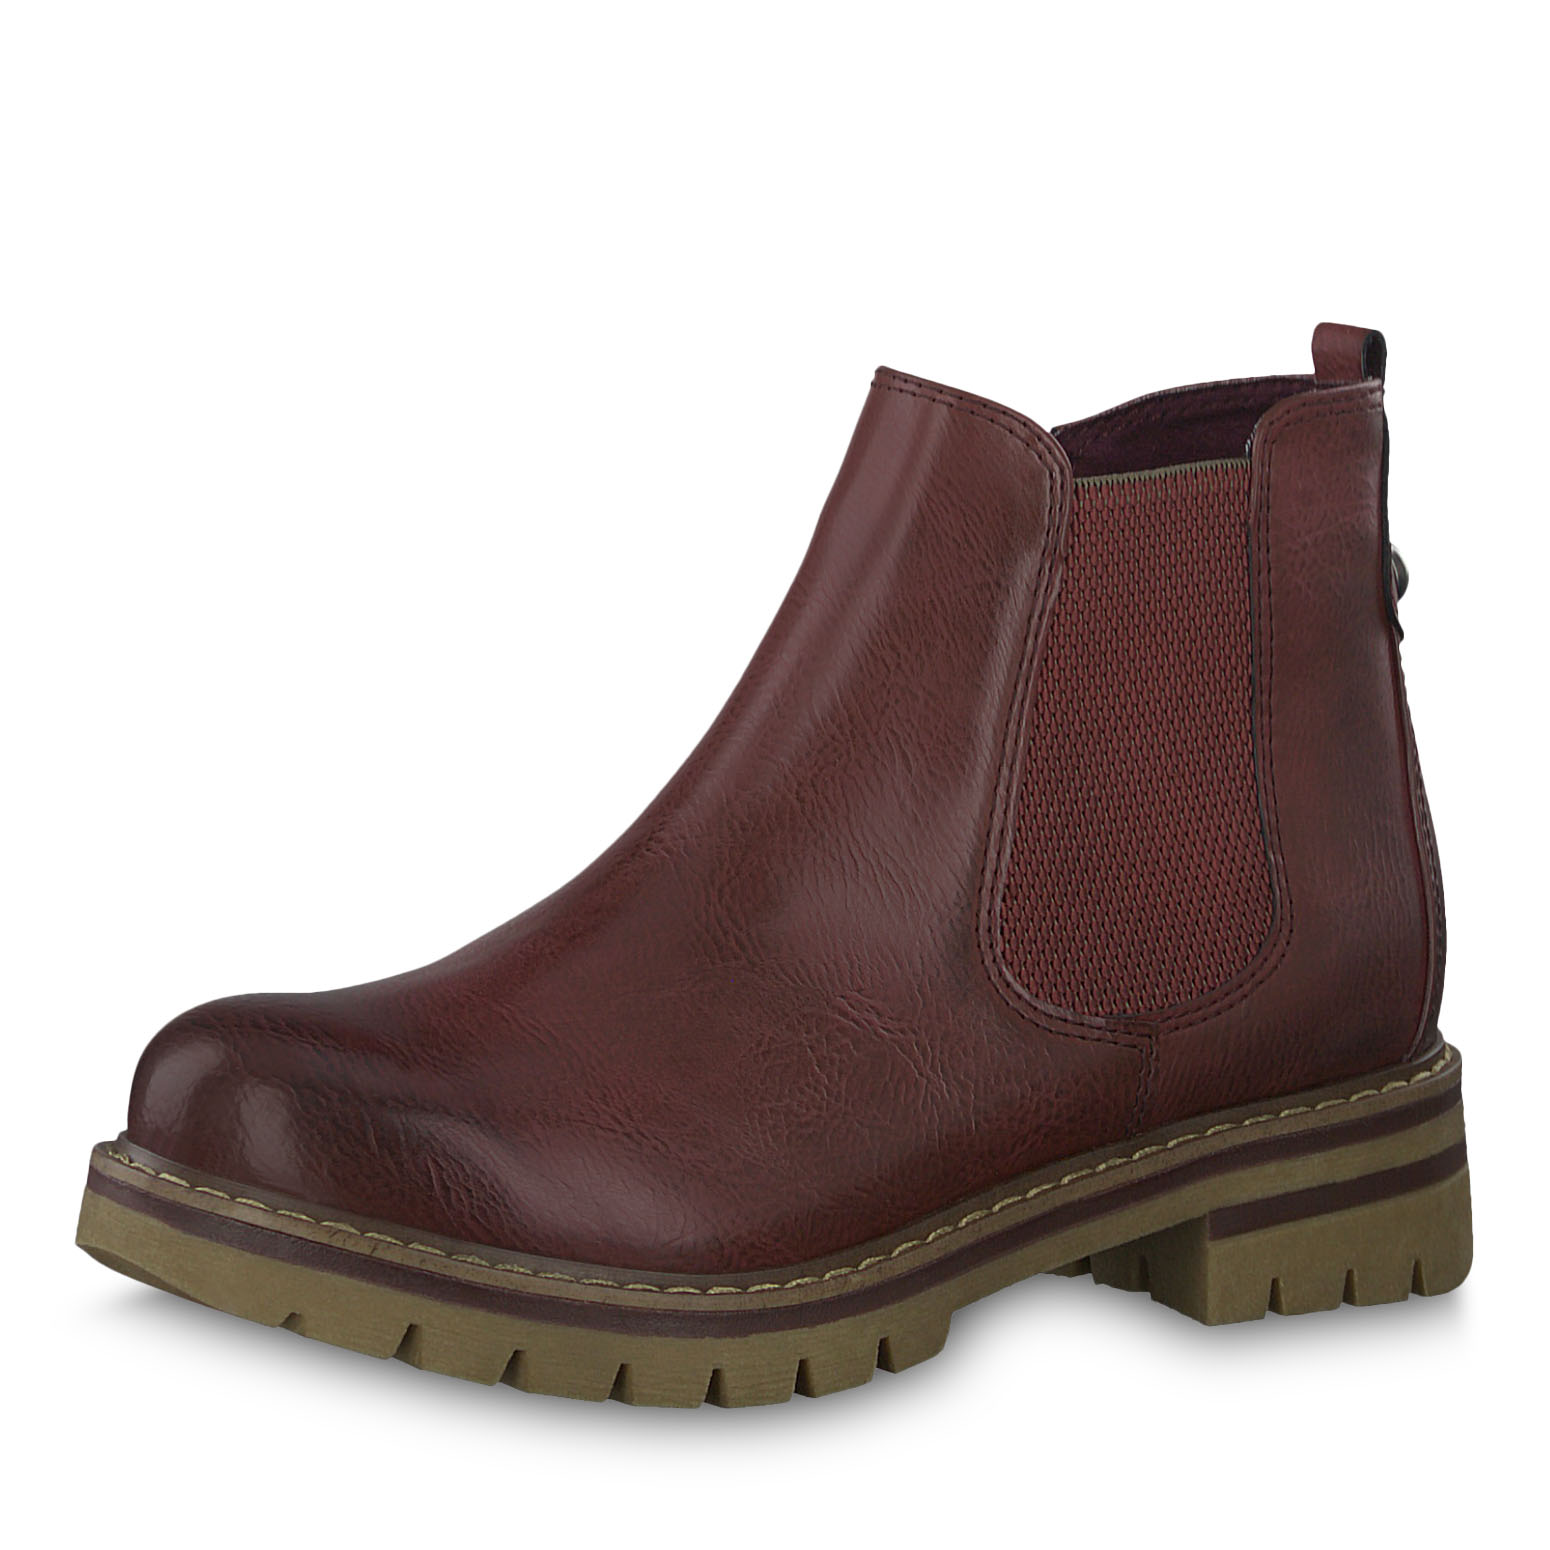 Chelsea boots, Seite 2